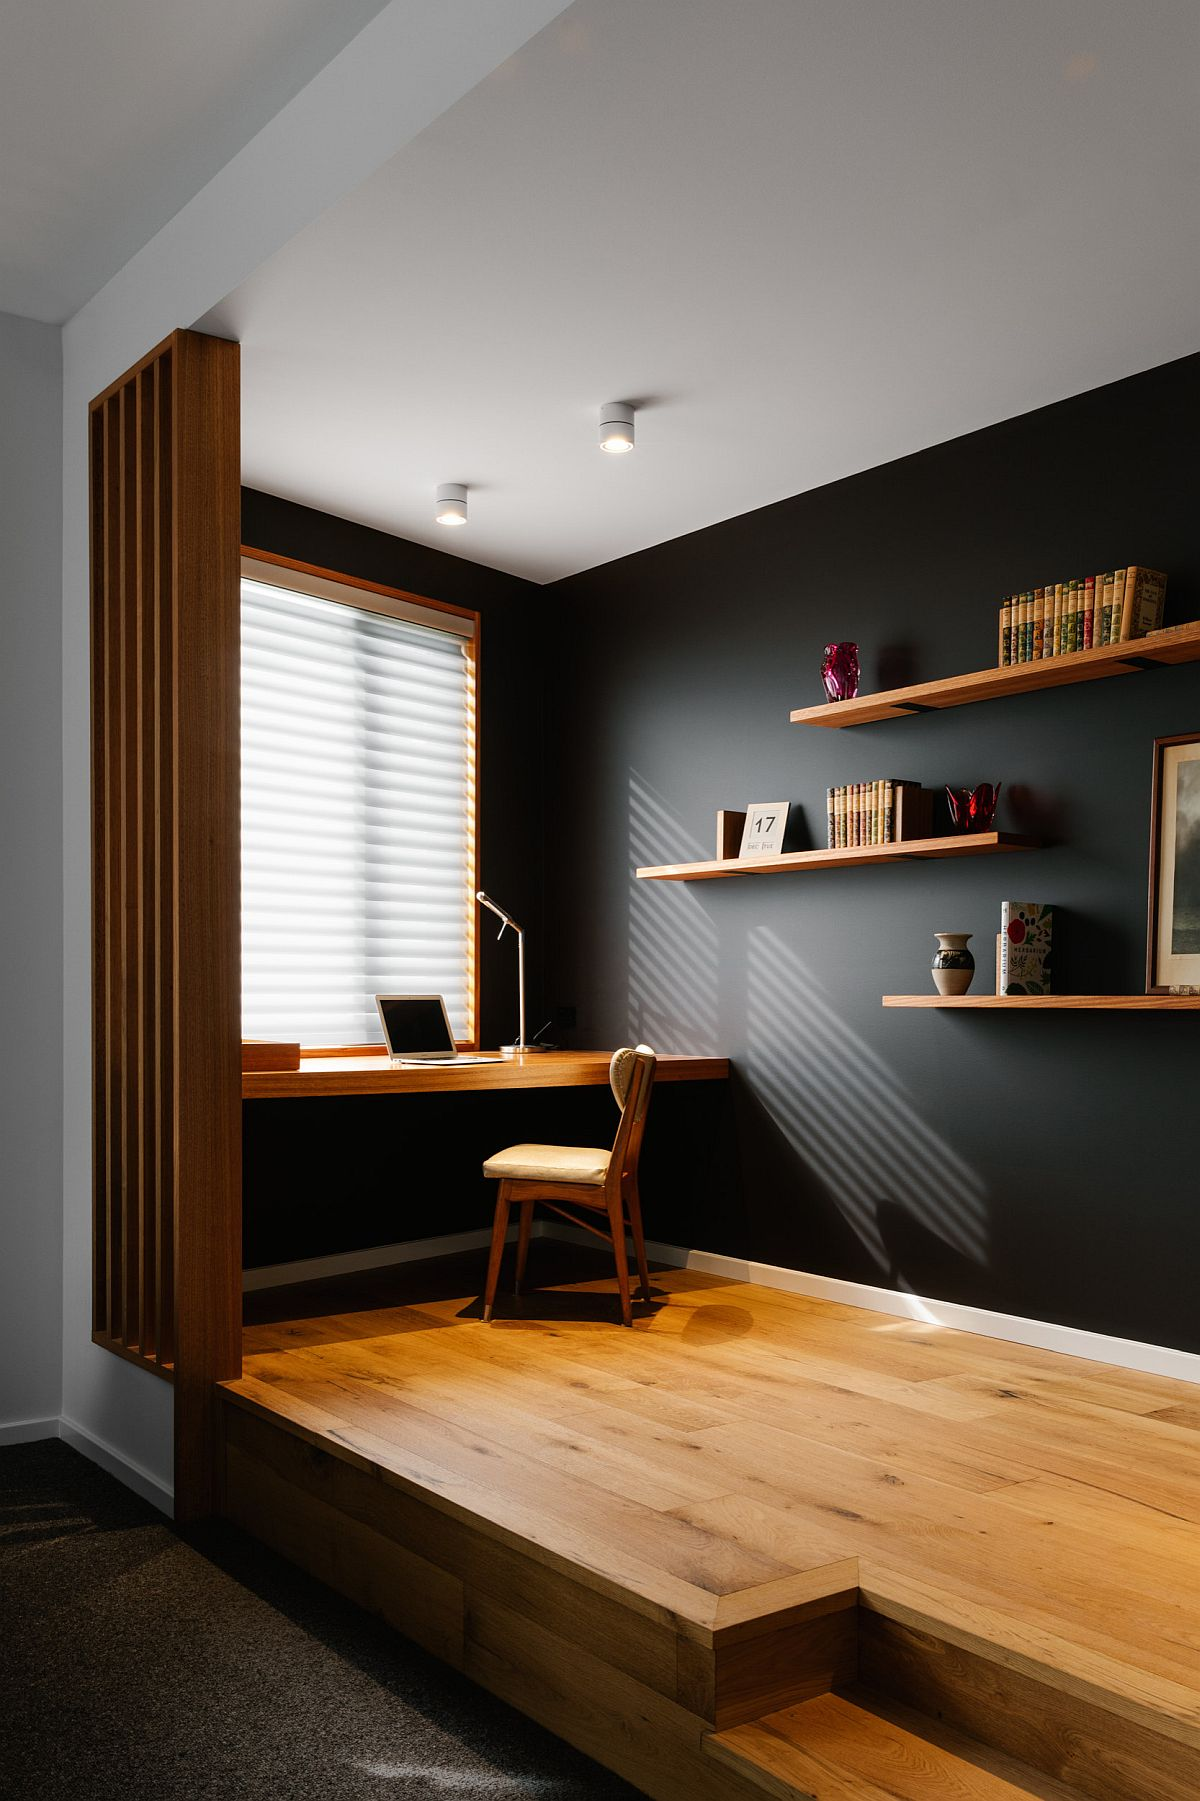 Raised wooden floor delineates this black and wood home office from the living area